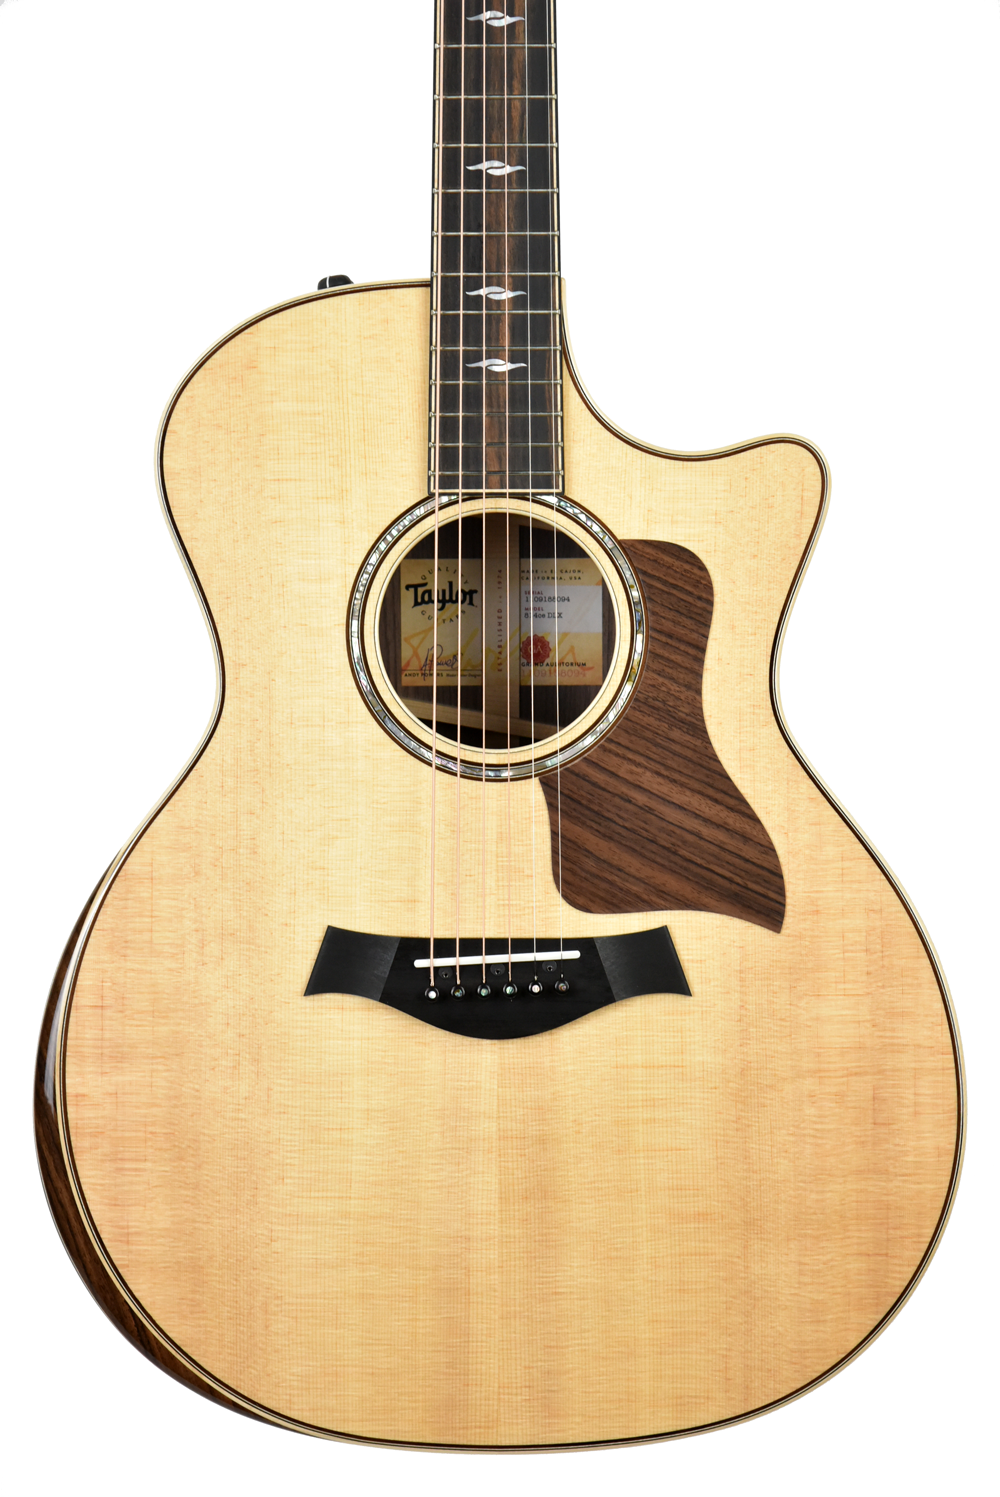 Taylor 814CE Deluxe V Class Bracing w/OHSC 1109188094